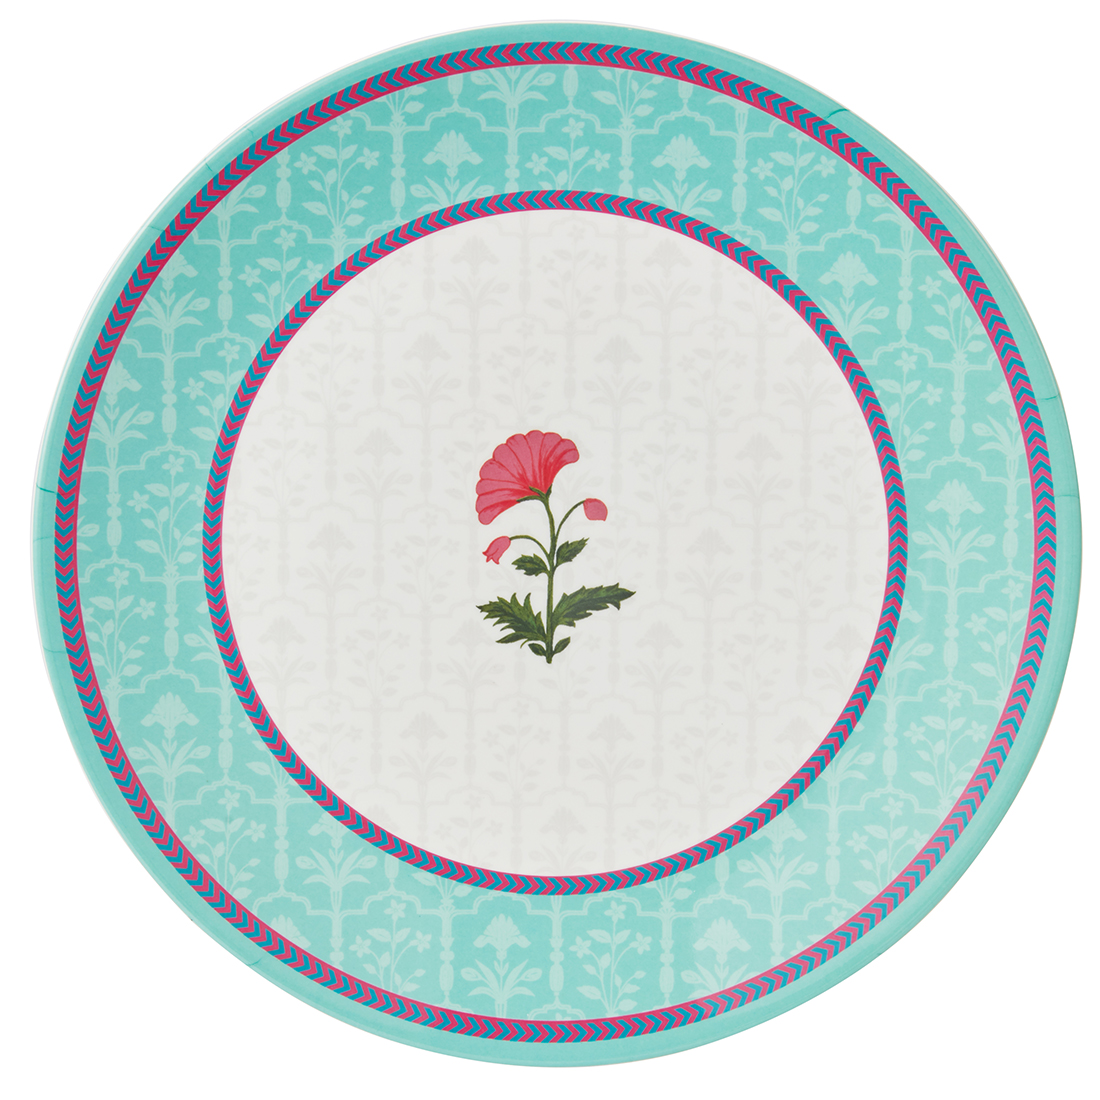 Rambagh Dinner Plate Plates in Multicolour Colour by Living Essence